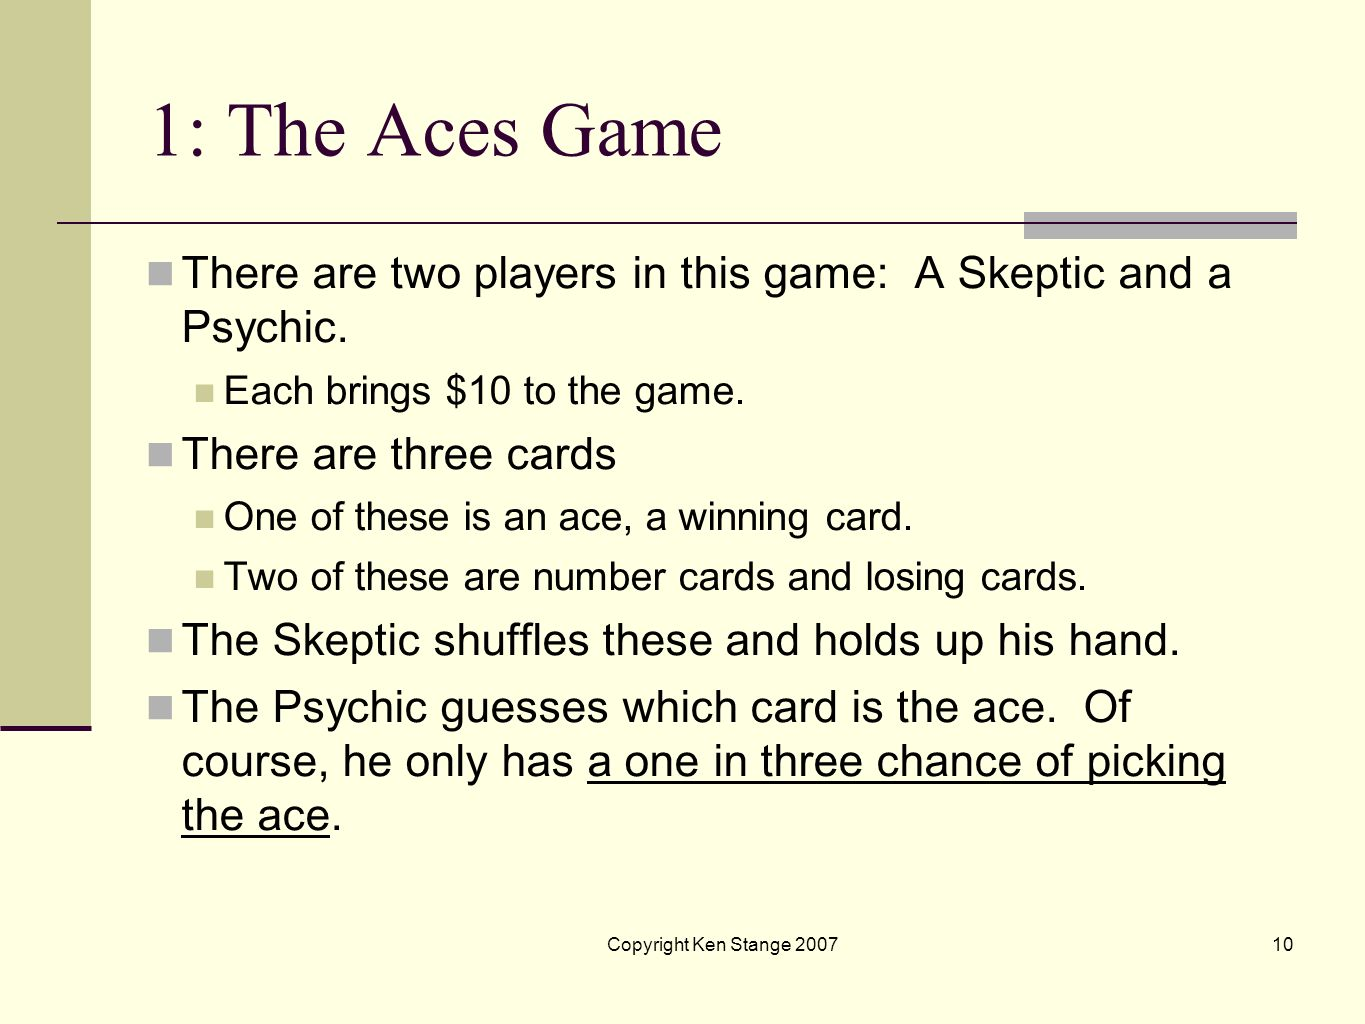 1: The Aces Game There are two players in this game: A Skeptic and a Psychic. Each brings $10 to the game.